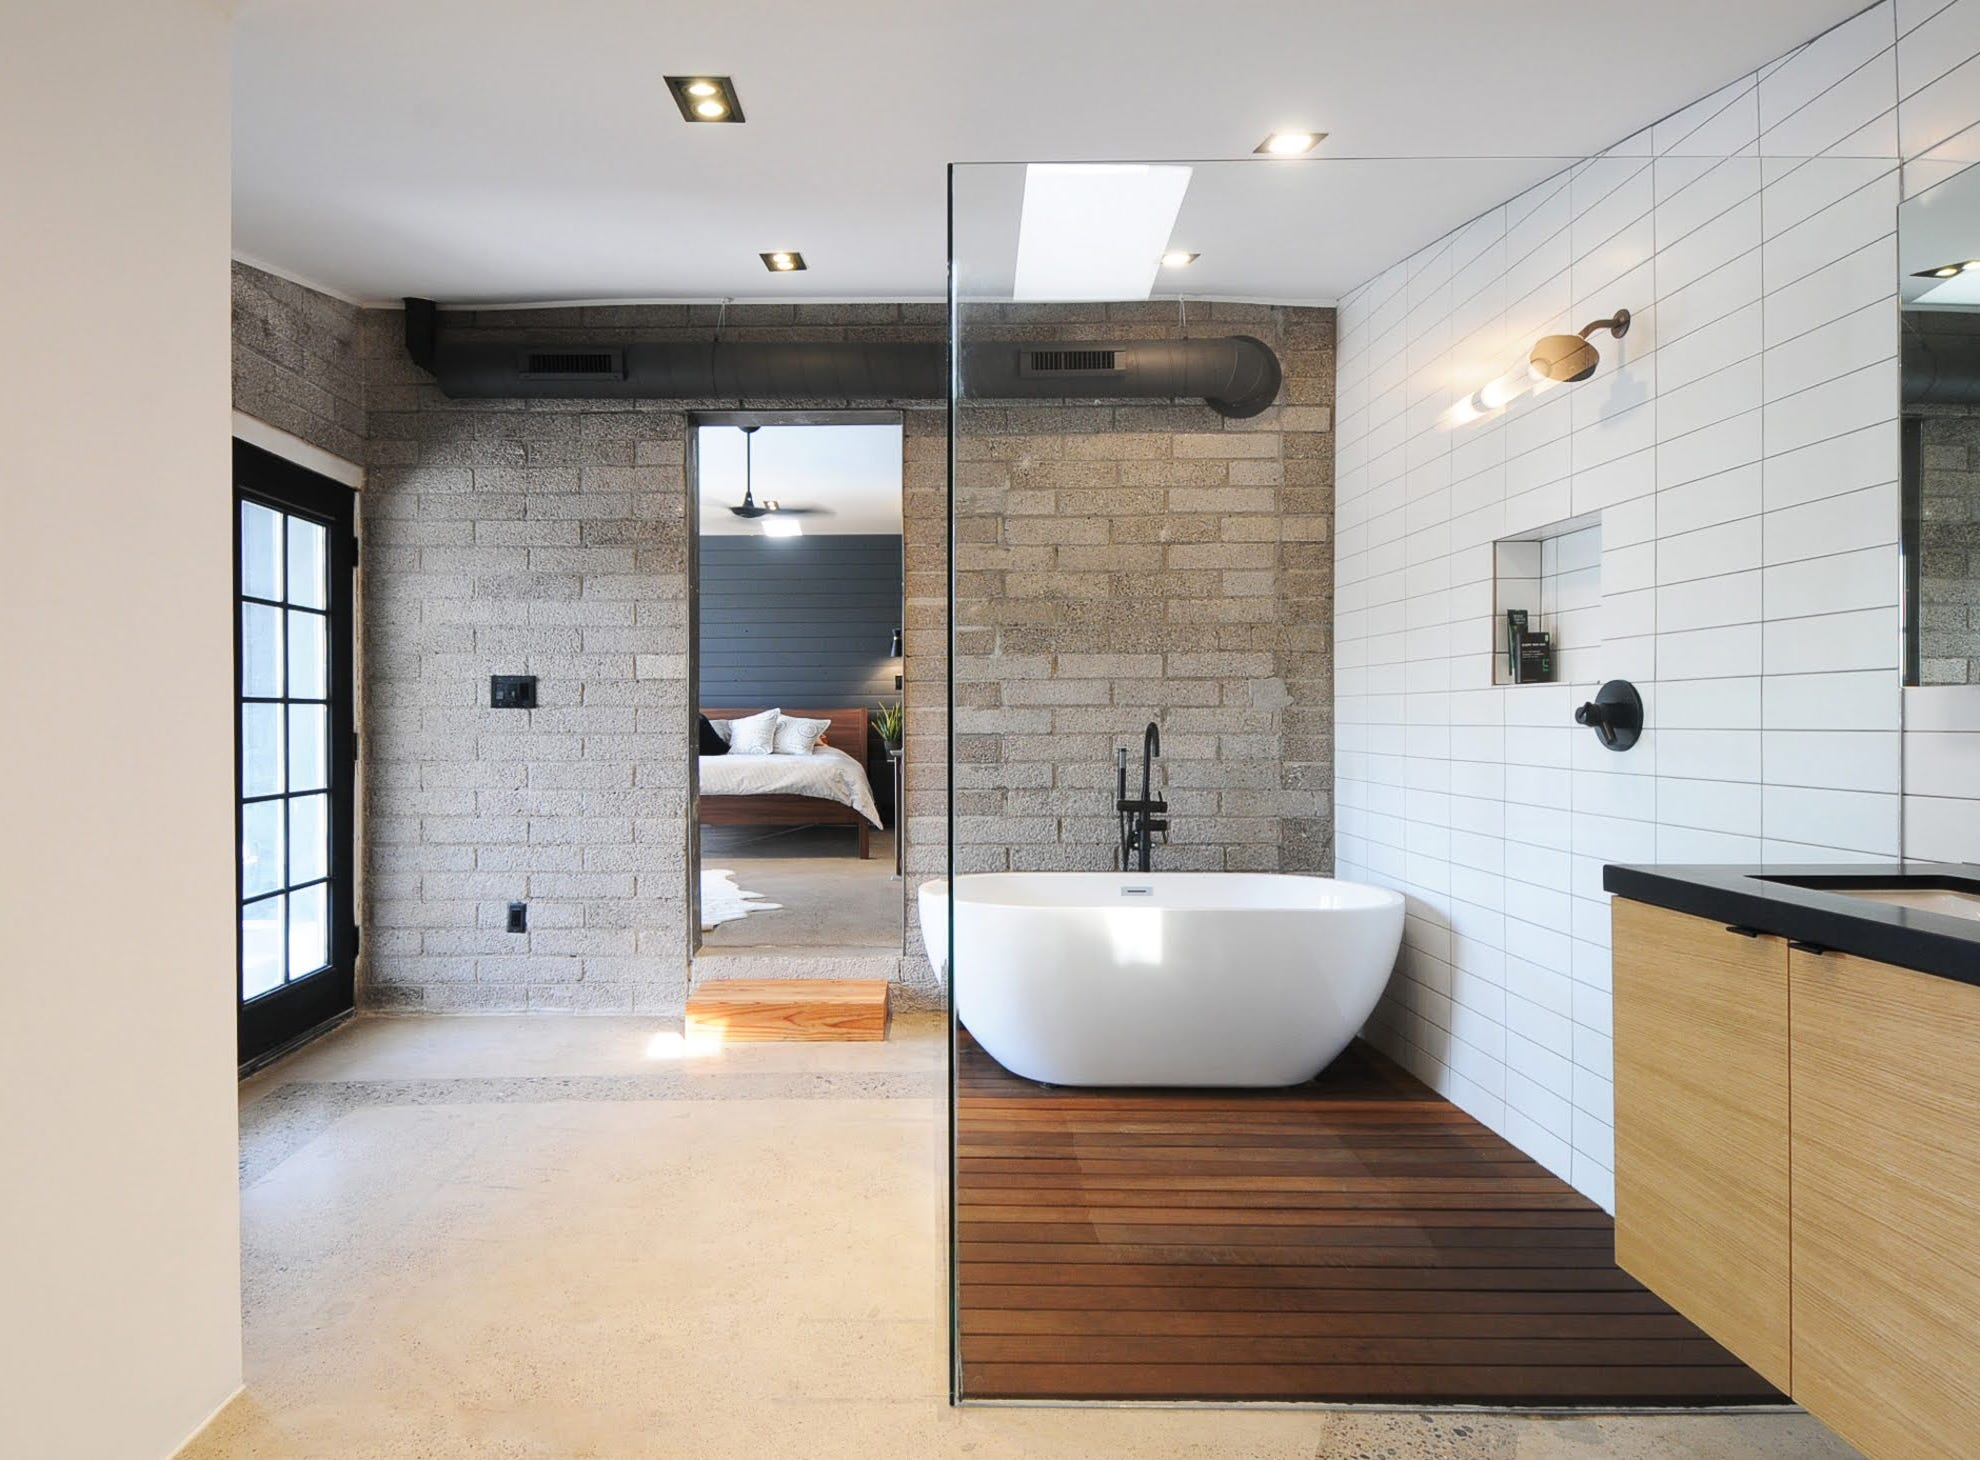 The master bathroom combines a mixture of teak, white tile, concrete floor, block walls and black-framed French doors.